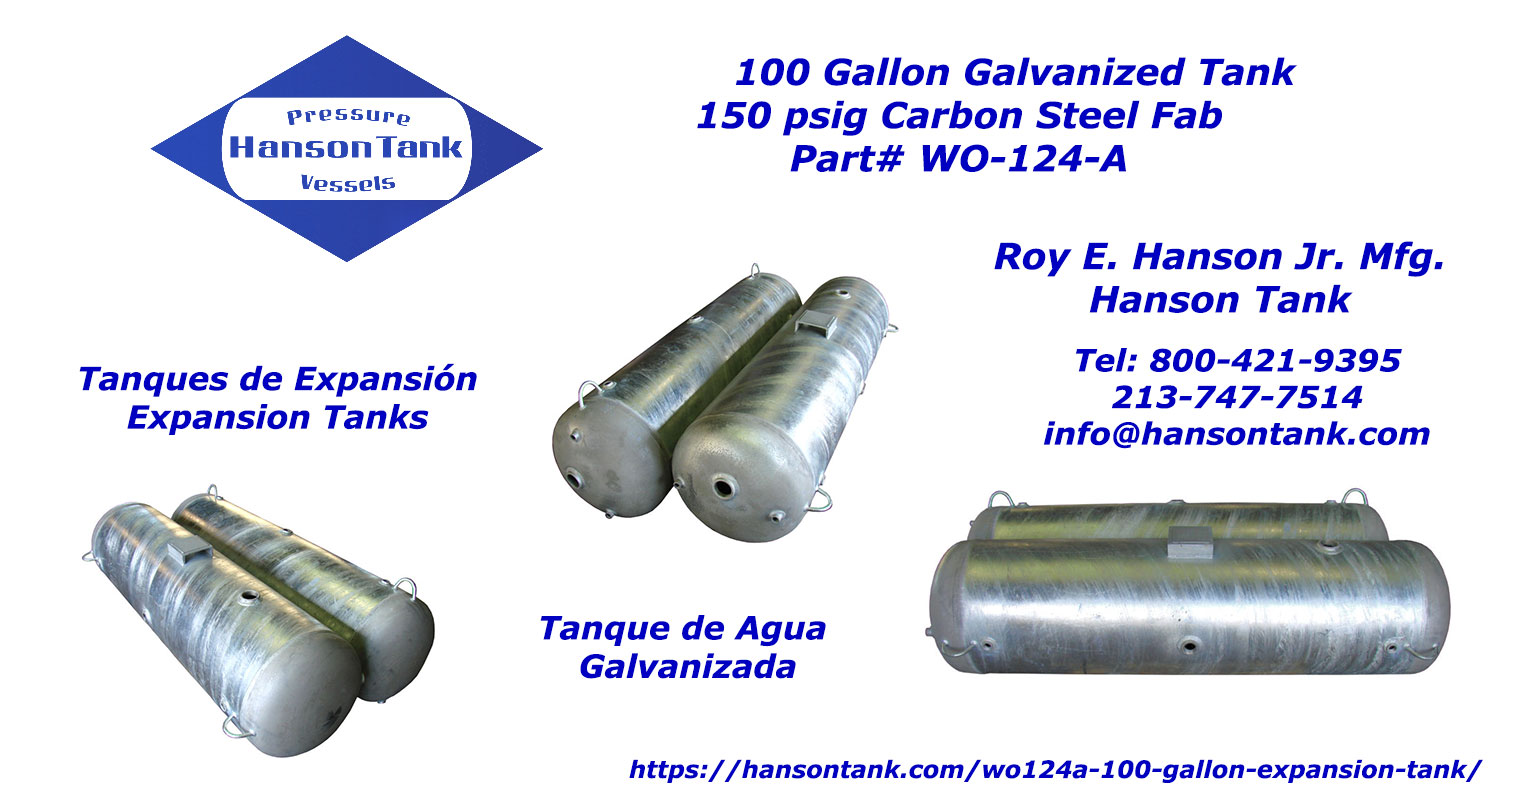 WO-124-A galvanized water tanks